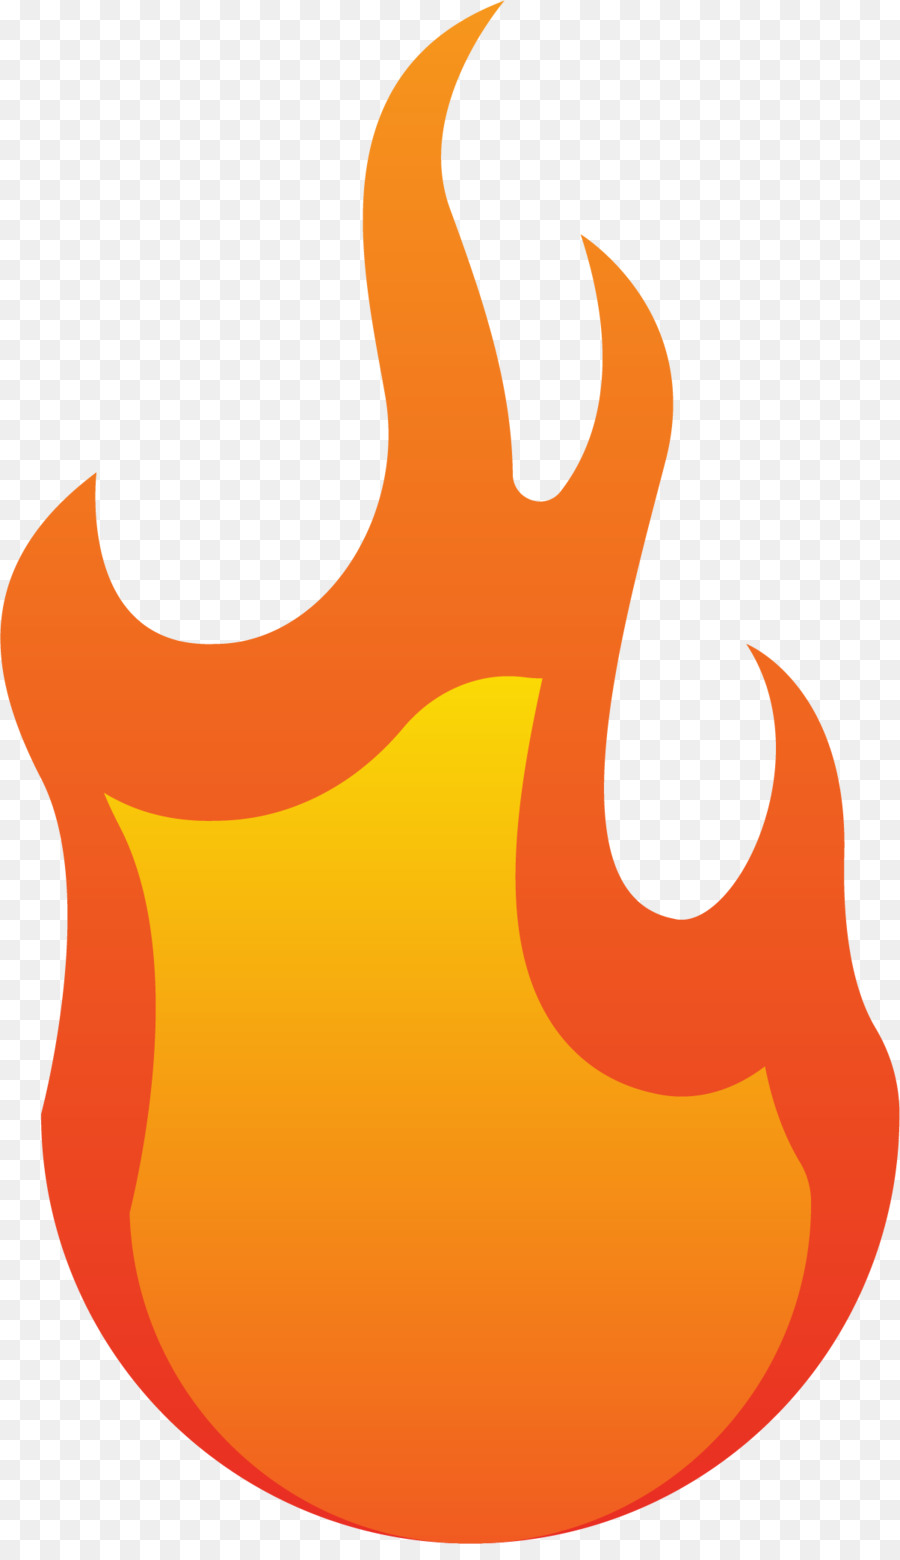 Flame cartoon png download. Fire clipart combustion